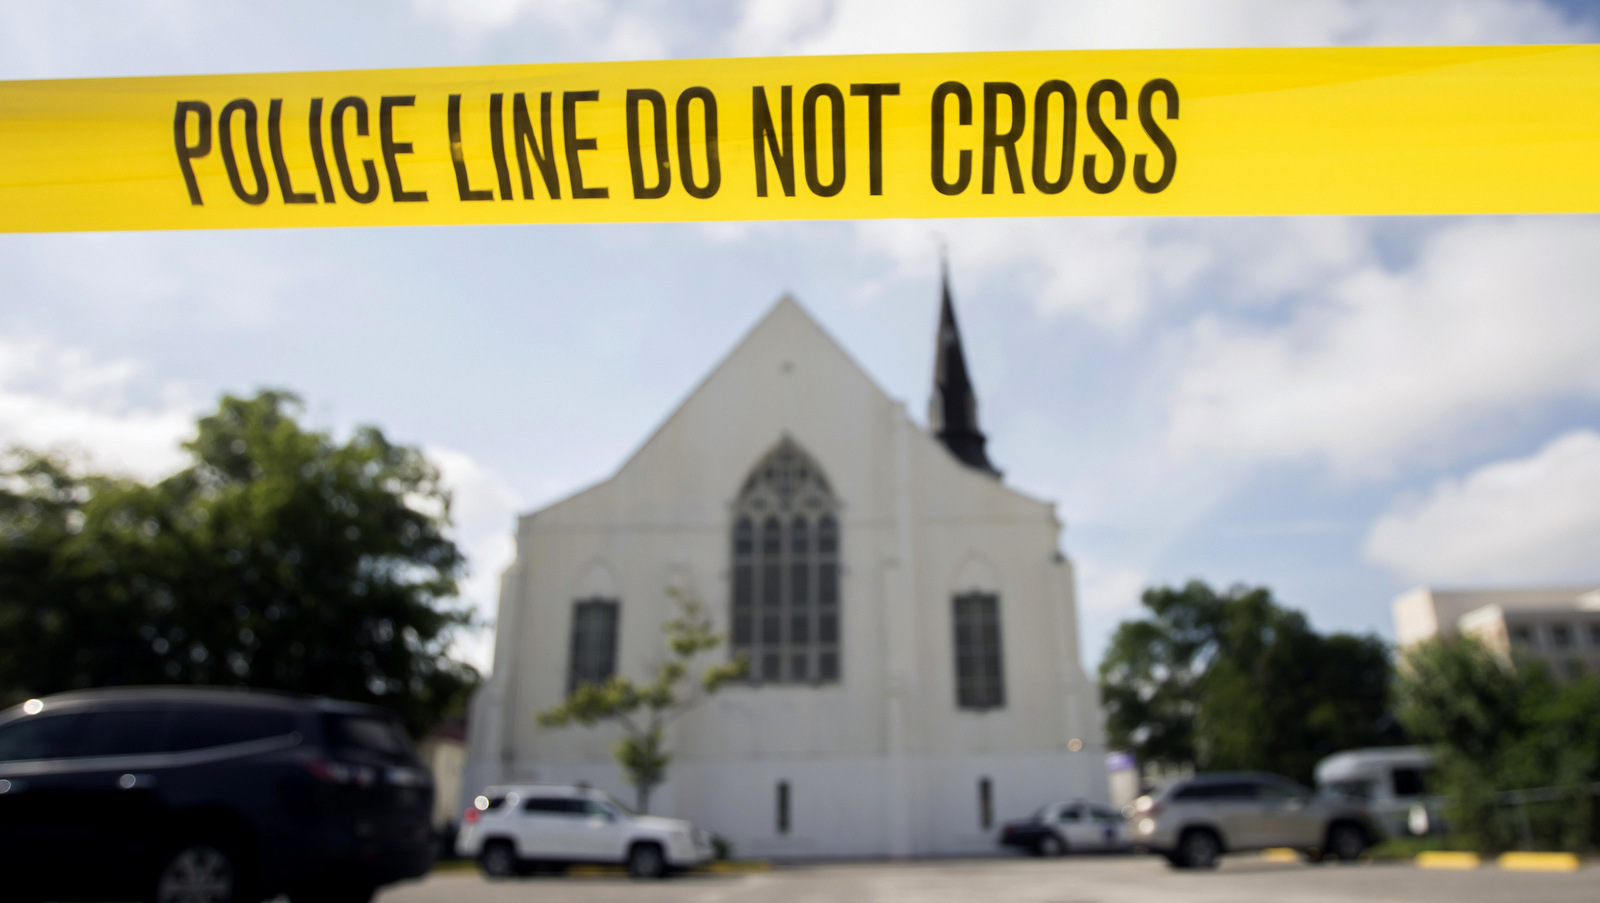 Police tape surrounds the parking lot behind the AME Emanuel Church as FBI forensic experts work the crime scene where nine people where shot by Dylann Storm Roof, 21, in Charleston, S.C. Since the Oklahoma City bombing in 1995, the Southern Poverty Law Center has tracked domestic terrorist plots and attacks in the United States. It lists more than 100, including the slaying of nine black churchgoers during a 2015 prayer meeting in Charleston, S.C. (AP/Stephen B. Morton)